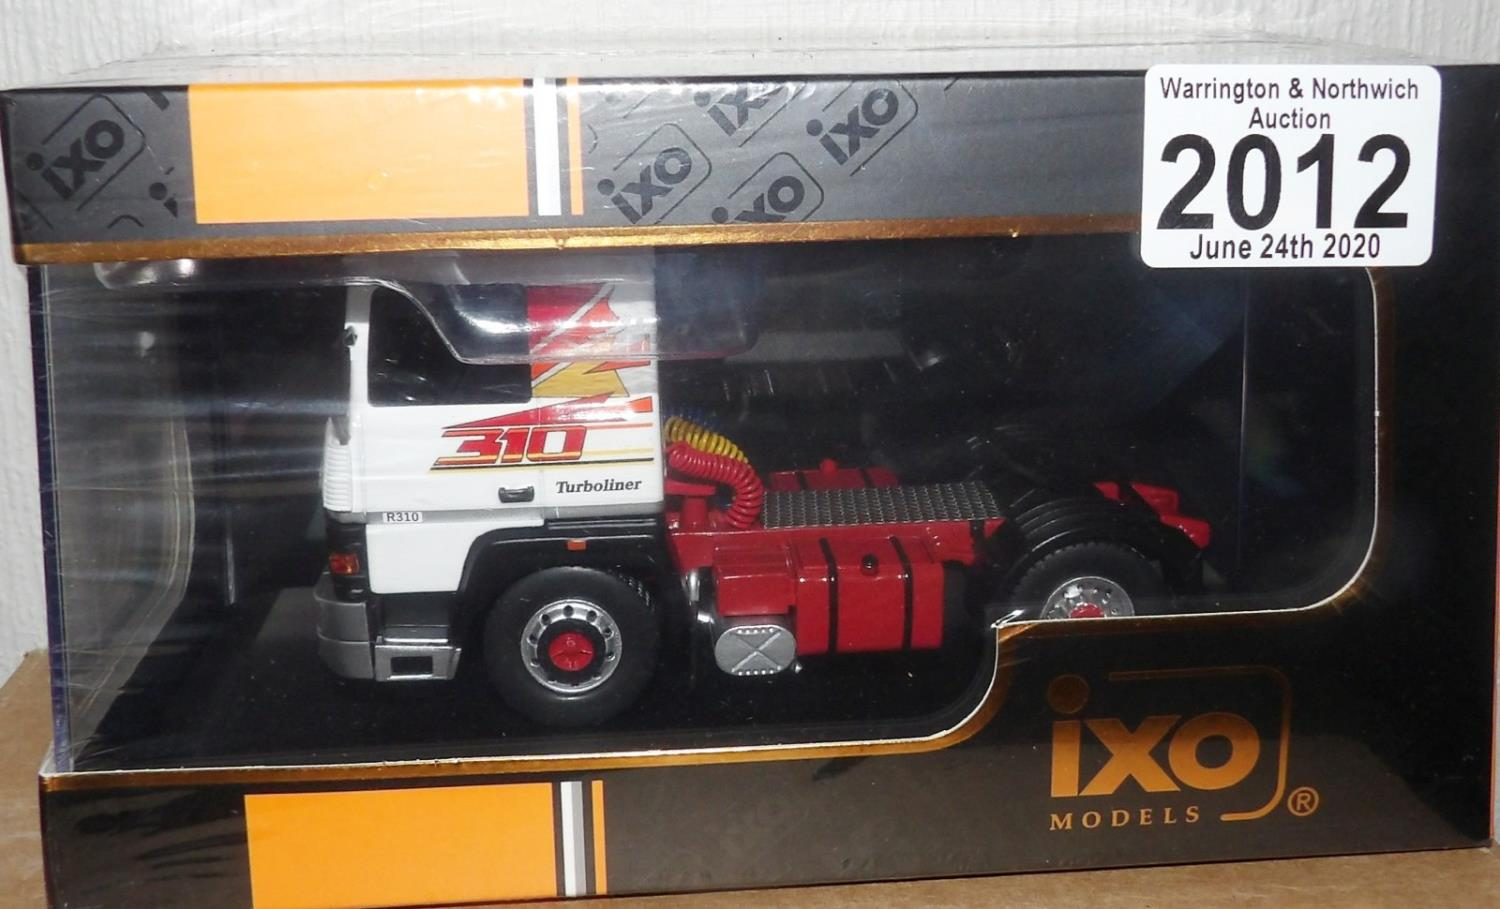 Lot 2012 - IXO 1.43 Scale RENAULT R310 Turboliner 1986. P&P Group 1 (£14+VAT for the first lot and £1+VAT for